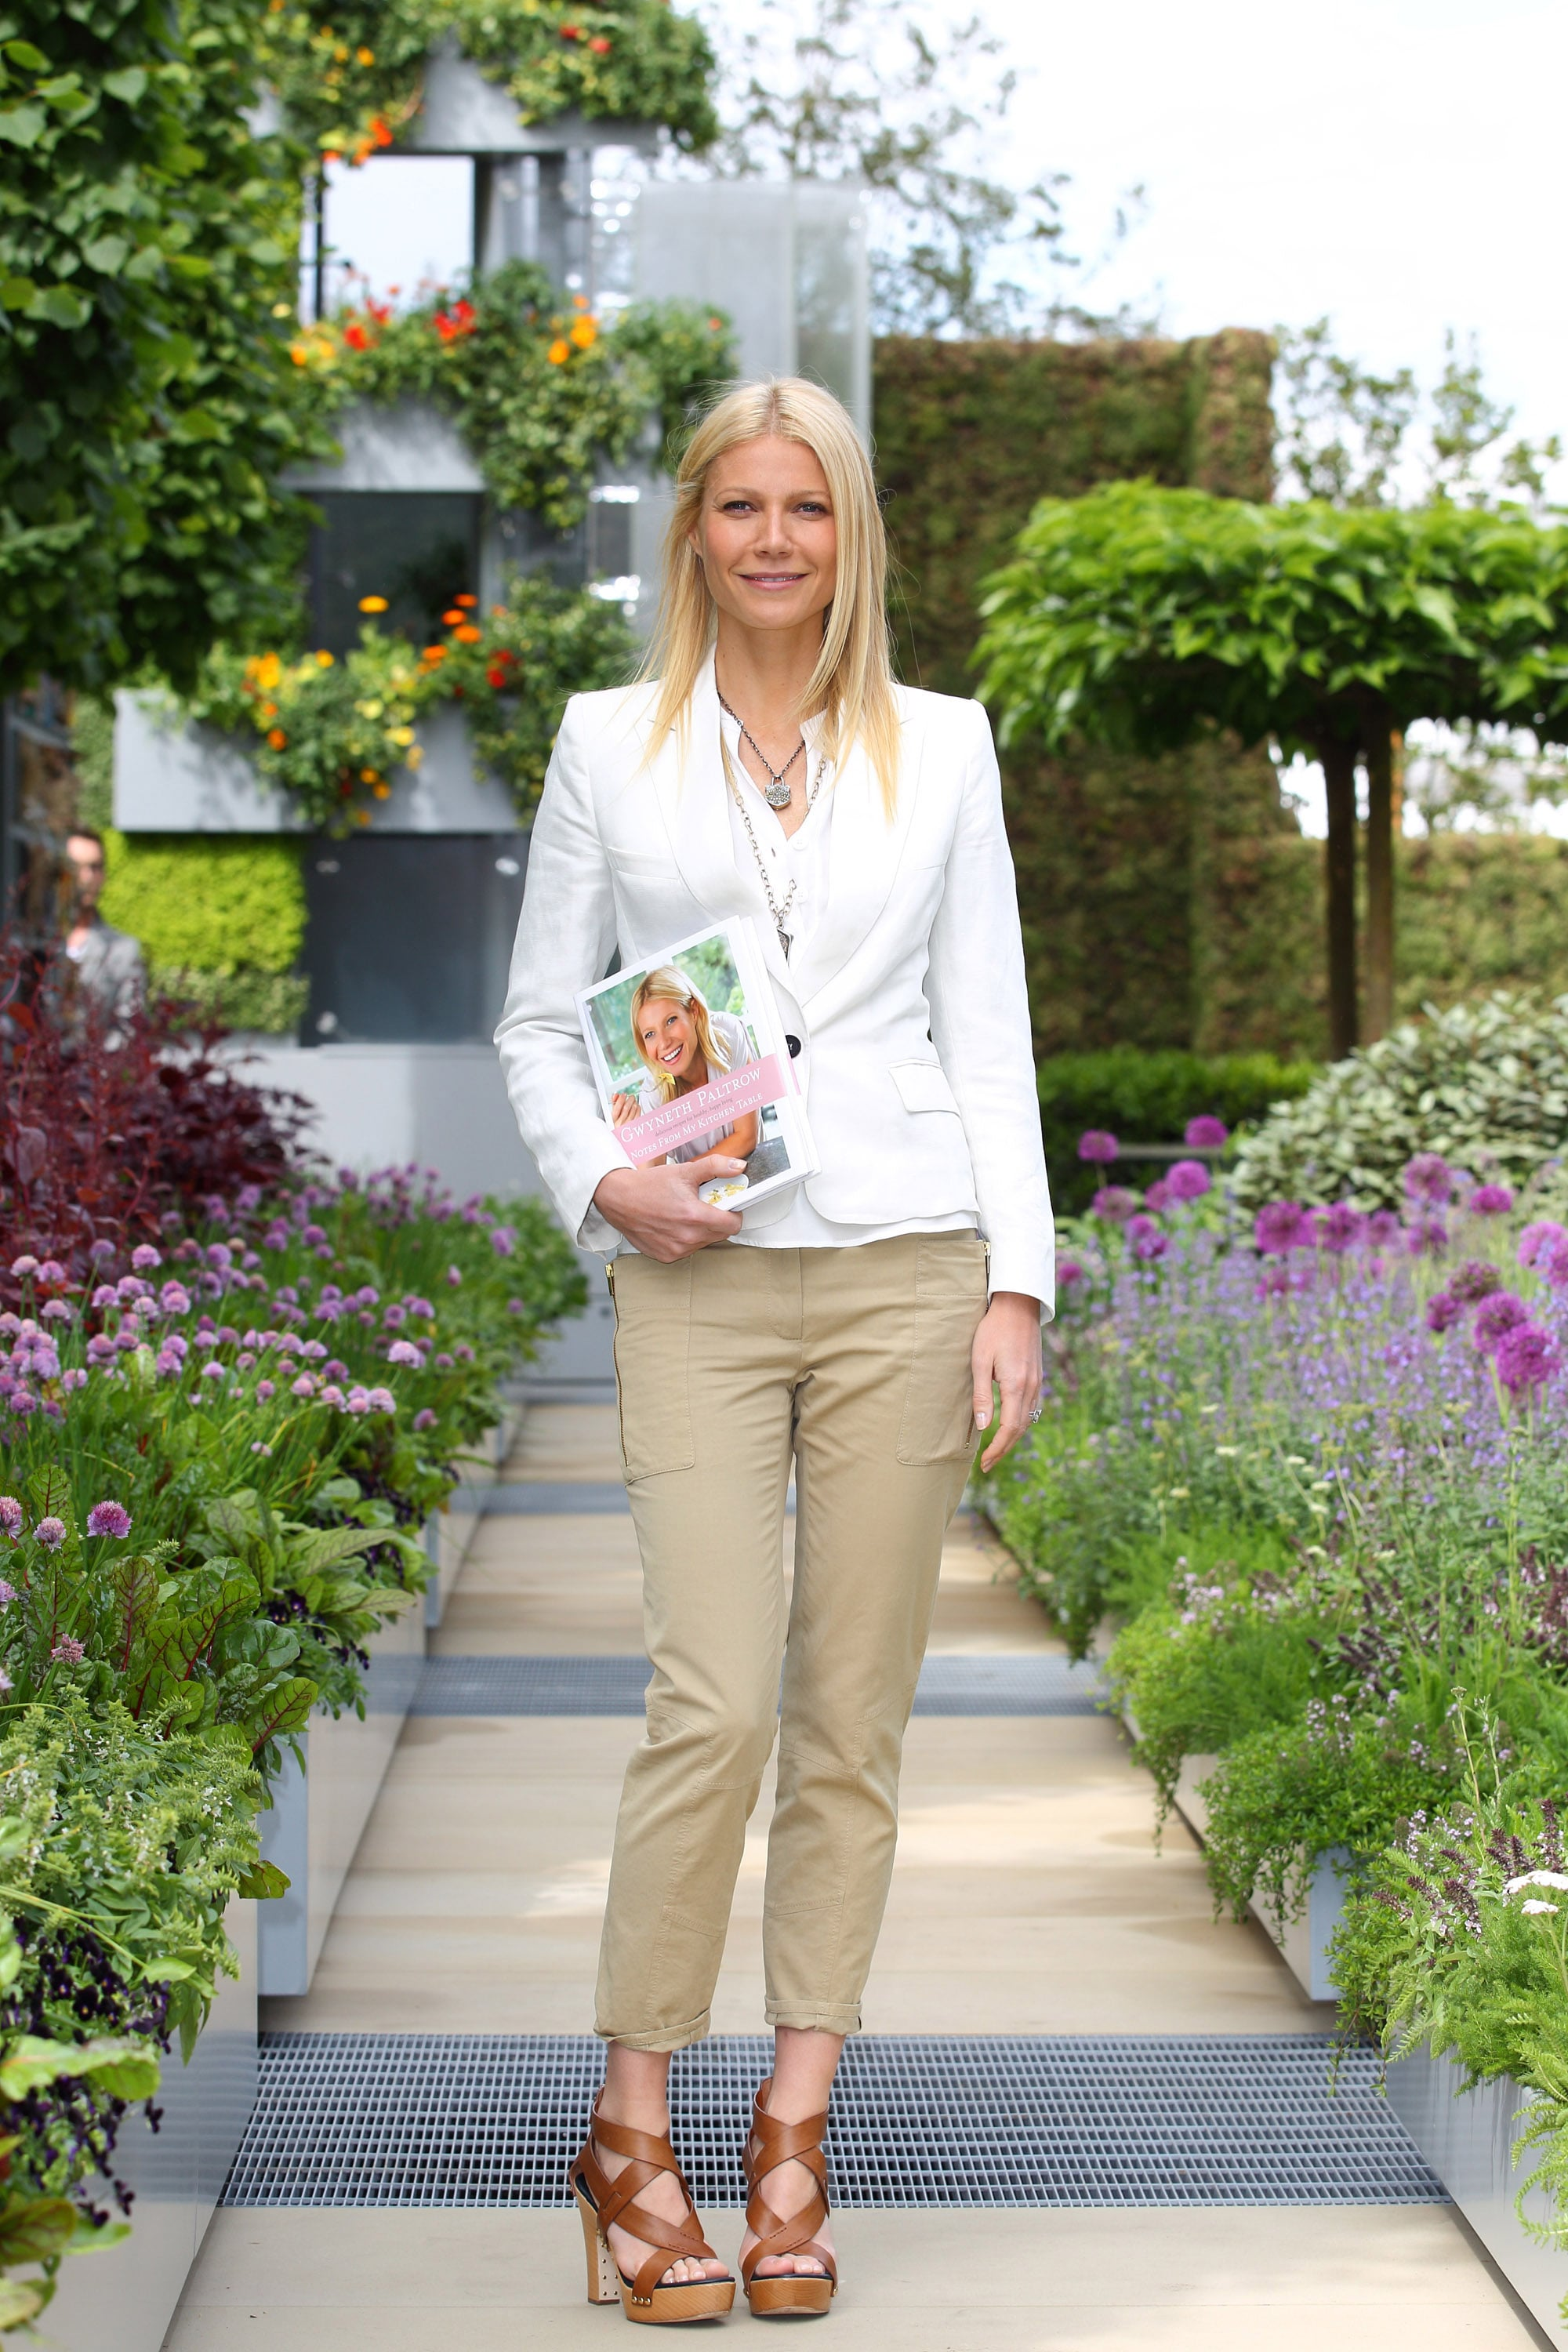 Video of gwyneth paltrow rapping and pictures of gwyneth at the image watchthetrailerfo